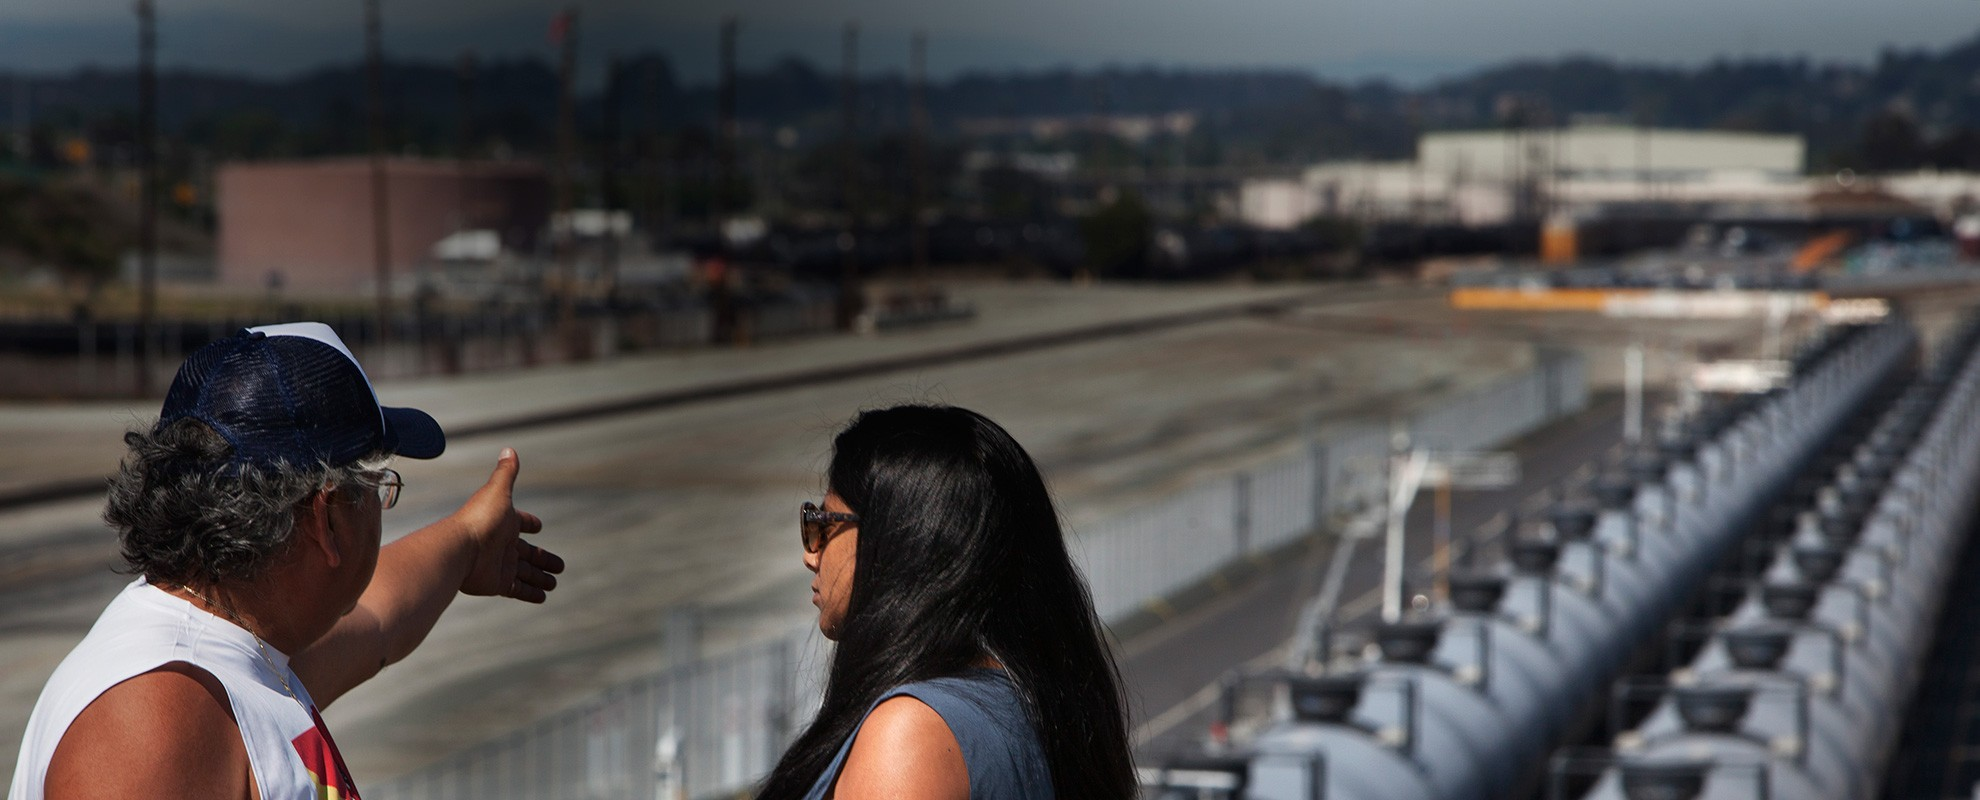 Communities for a Better Environment Organizer Andrés Soto and Earthjustice Attorney Suma Peesapati look over the railyard in Richmond, where highly explosive and toxic crude oil is being brought into the city.